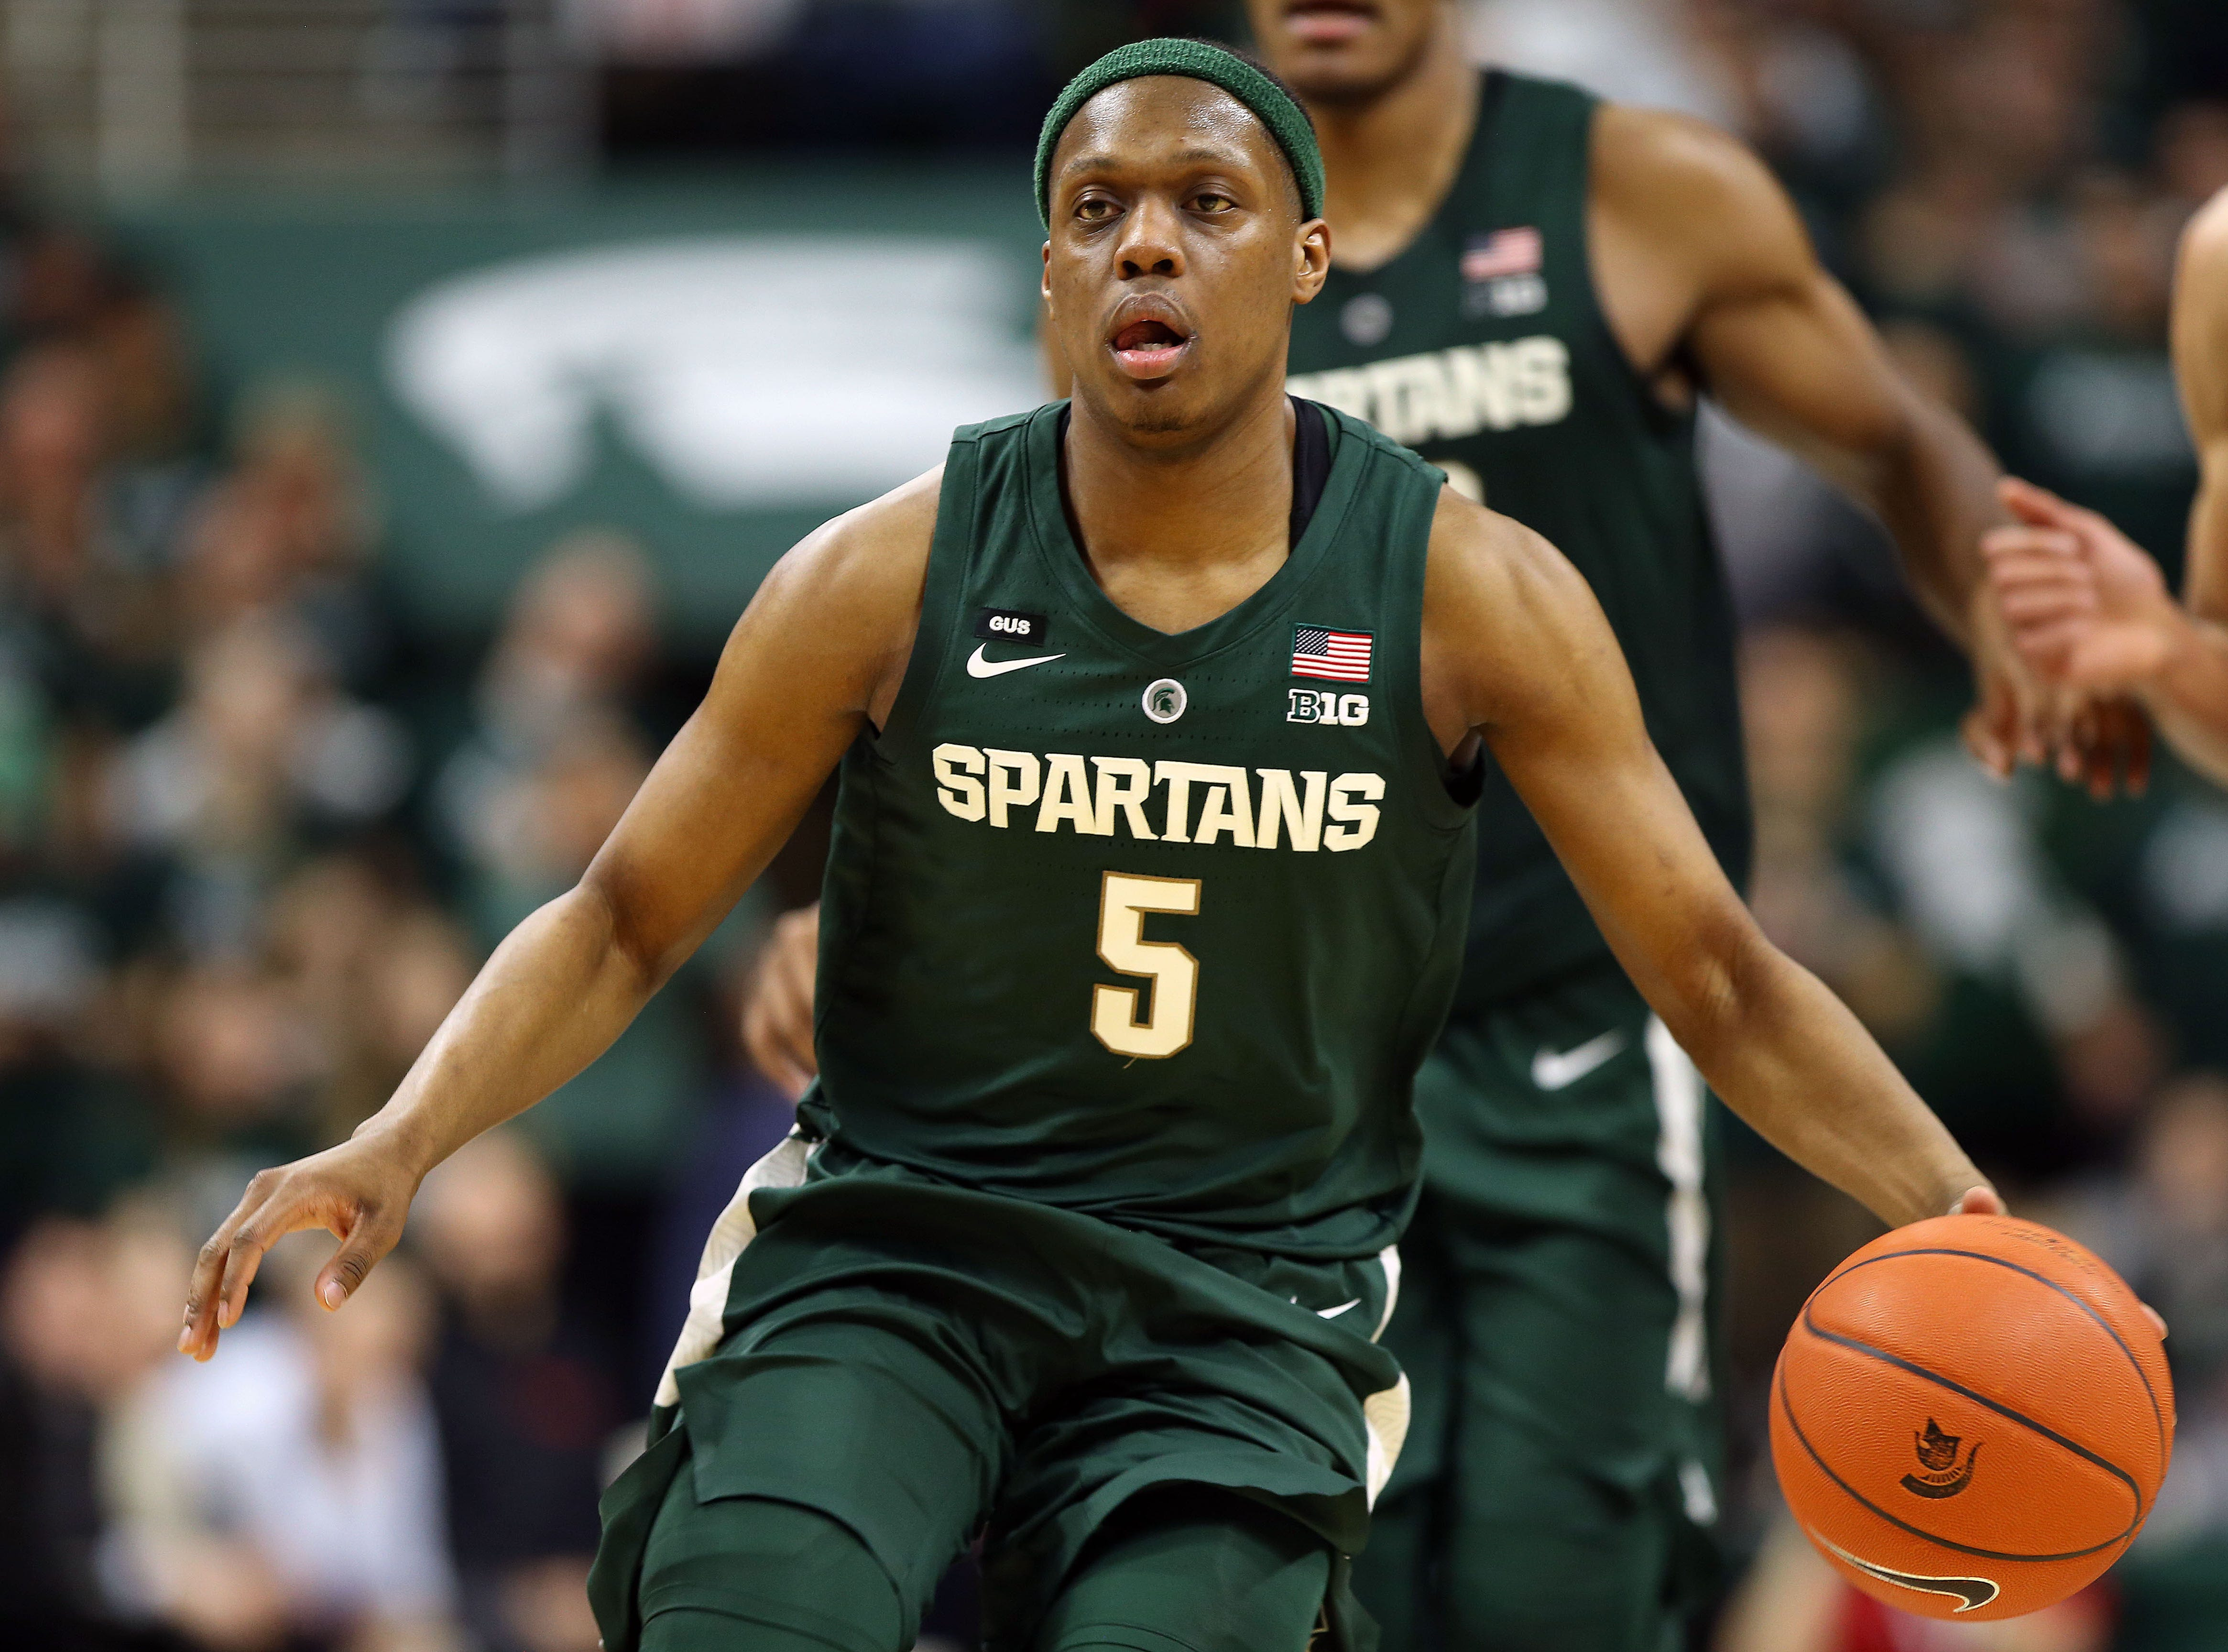 Mar 5, 2019; East Lansing, MI, USA; Michigan State Spartans guard Cassius Winston (5) brings the ball up court during the second half against the Nebraska Cornhuskers at the Breslin Center. Mandatory Credit: Mike Carter-USA TODAY Sports